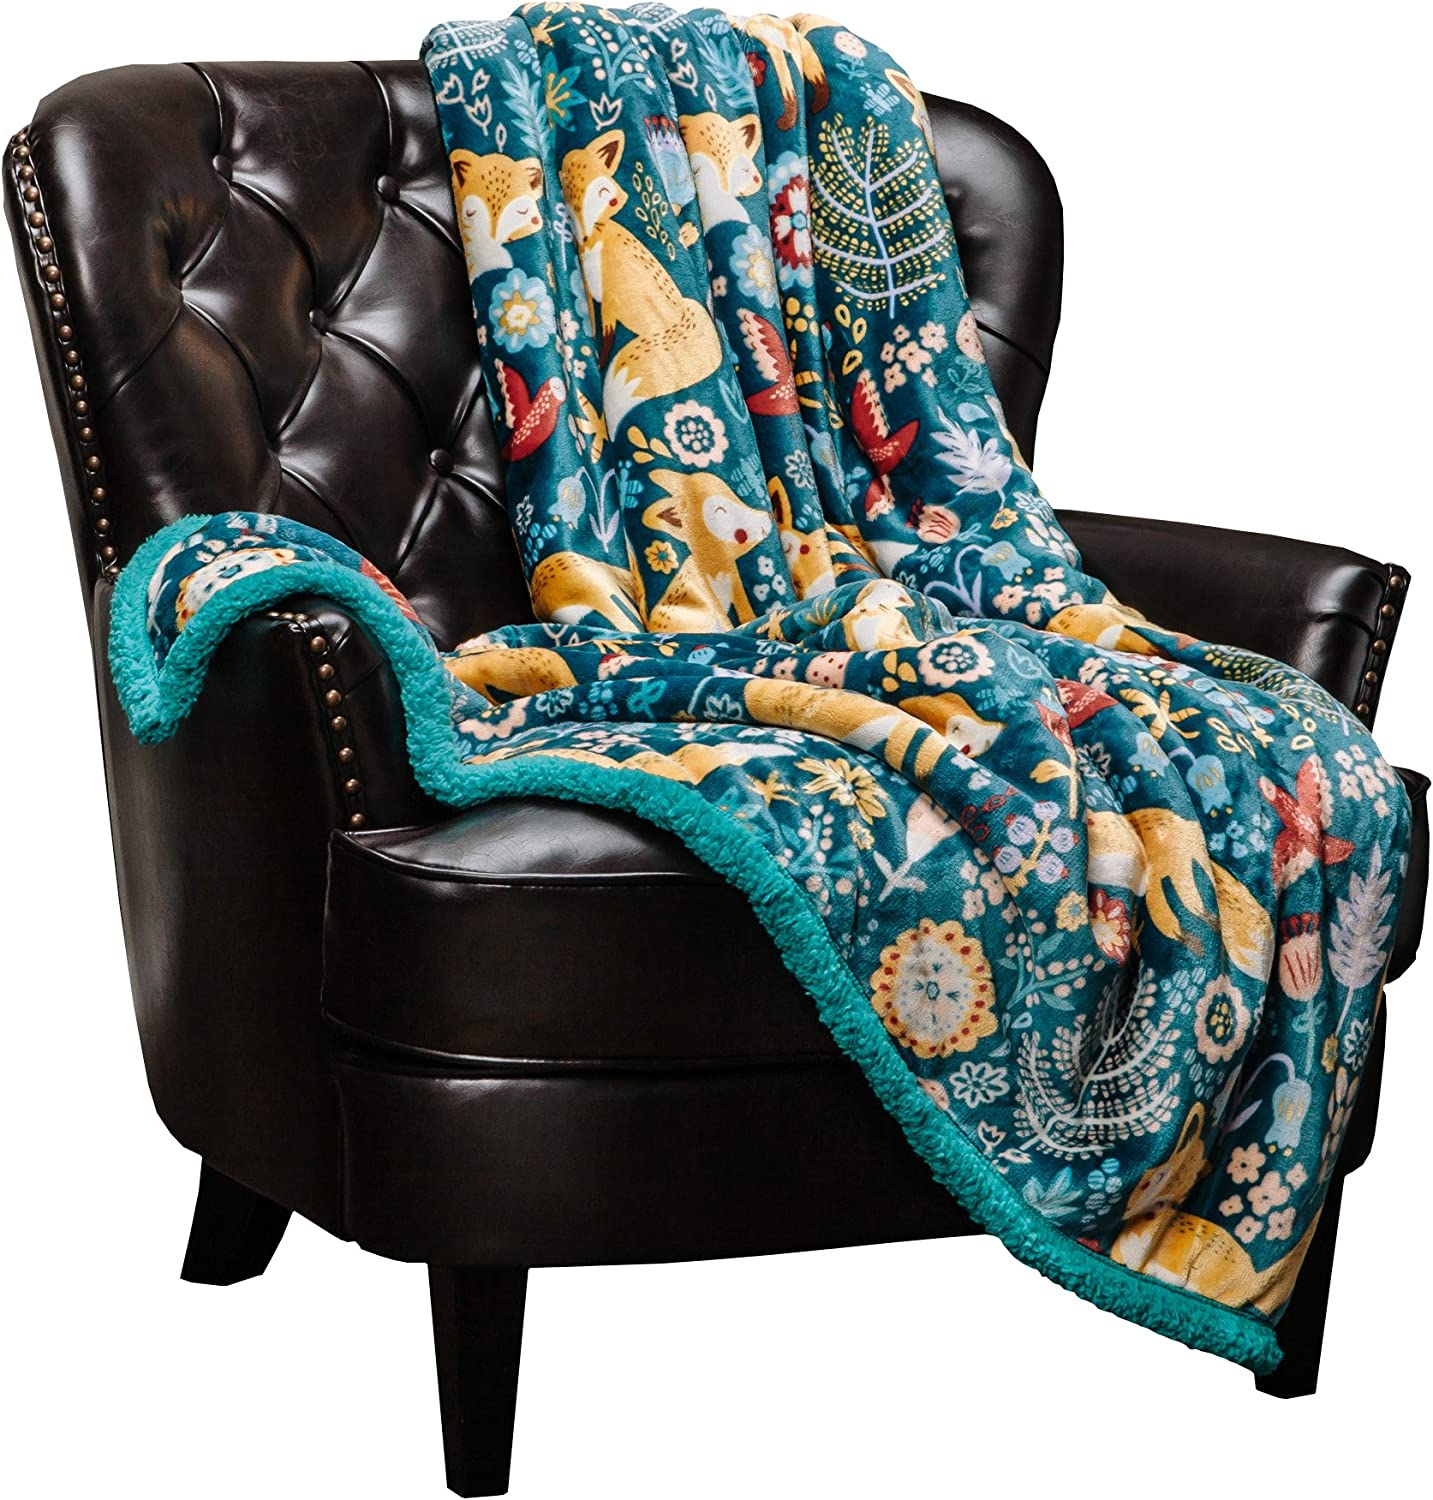 Chanasya Gold Fox Lush Nature Vibrant Color Print Gift Throw Blanket - Super Soft Cozy Snuggly Luxurious Chick Plush Sherpa for Birthday Kids Bed Couch Sofa Chair Office (Queen) - Teal Blue